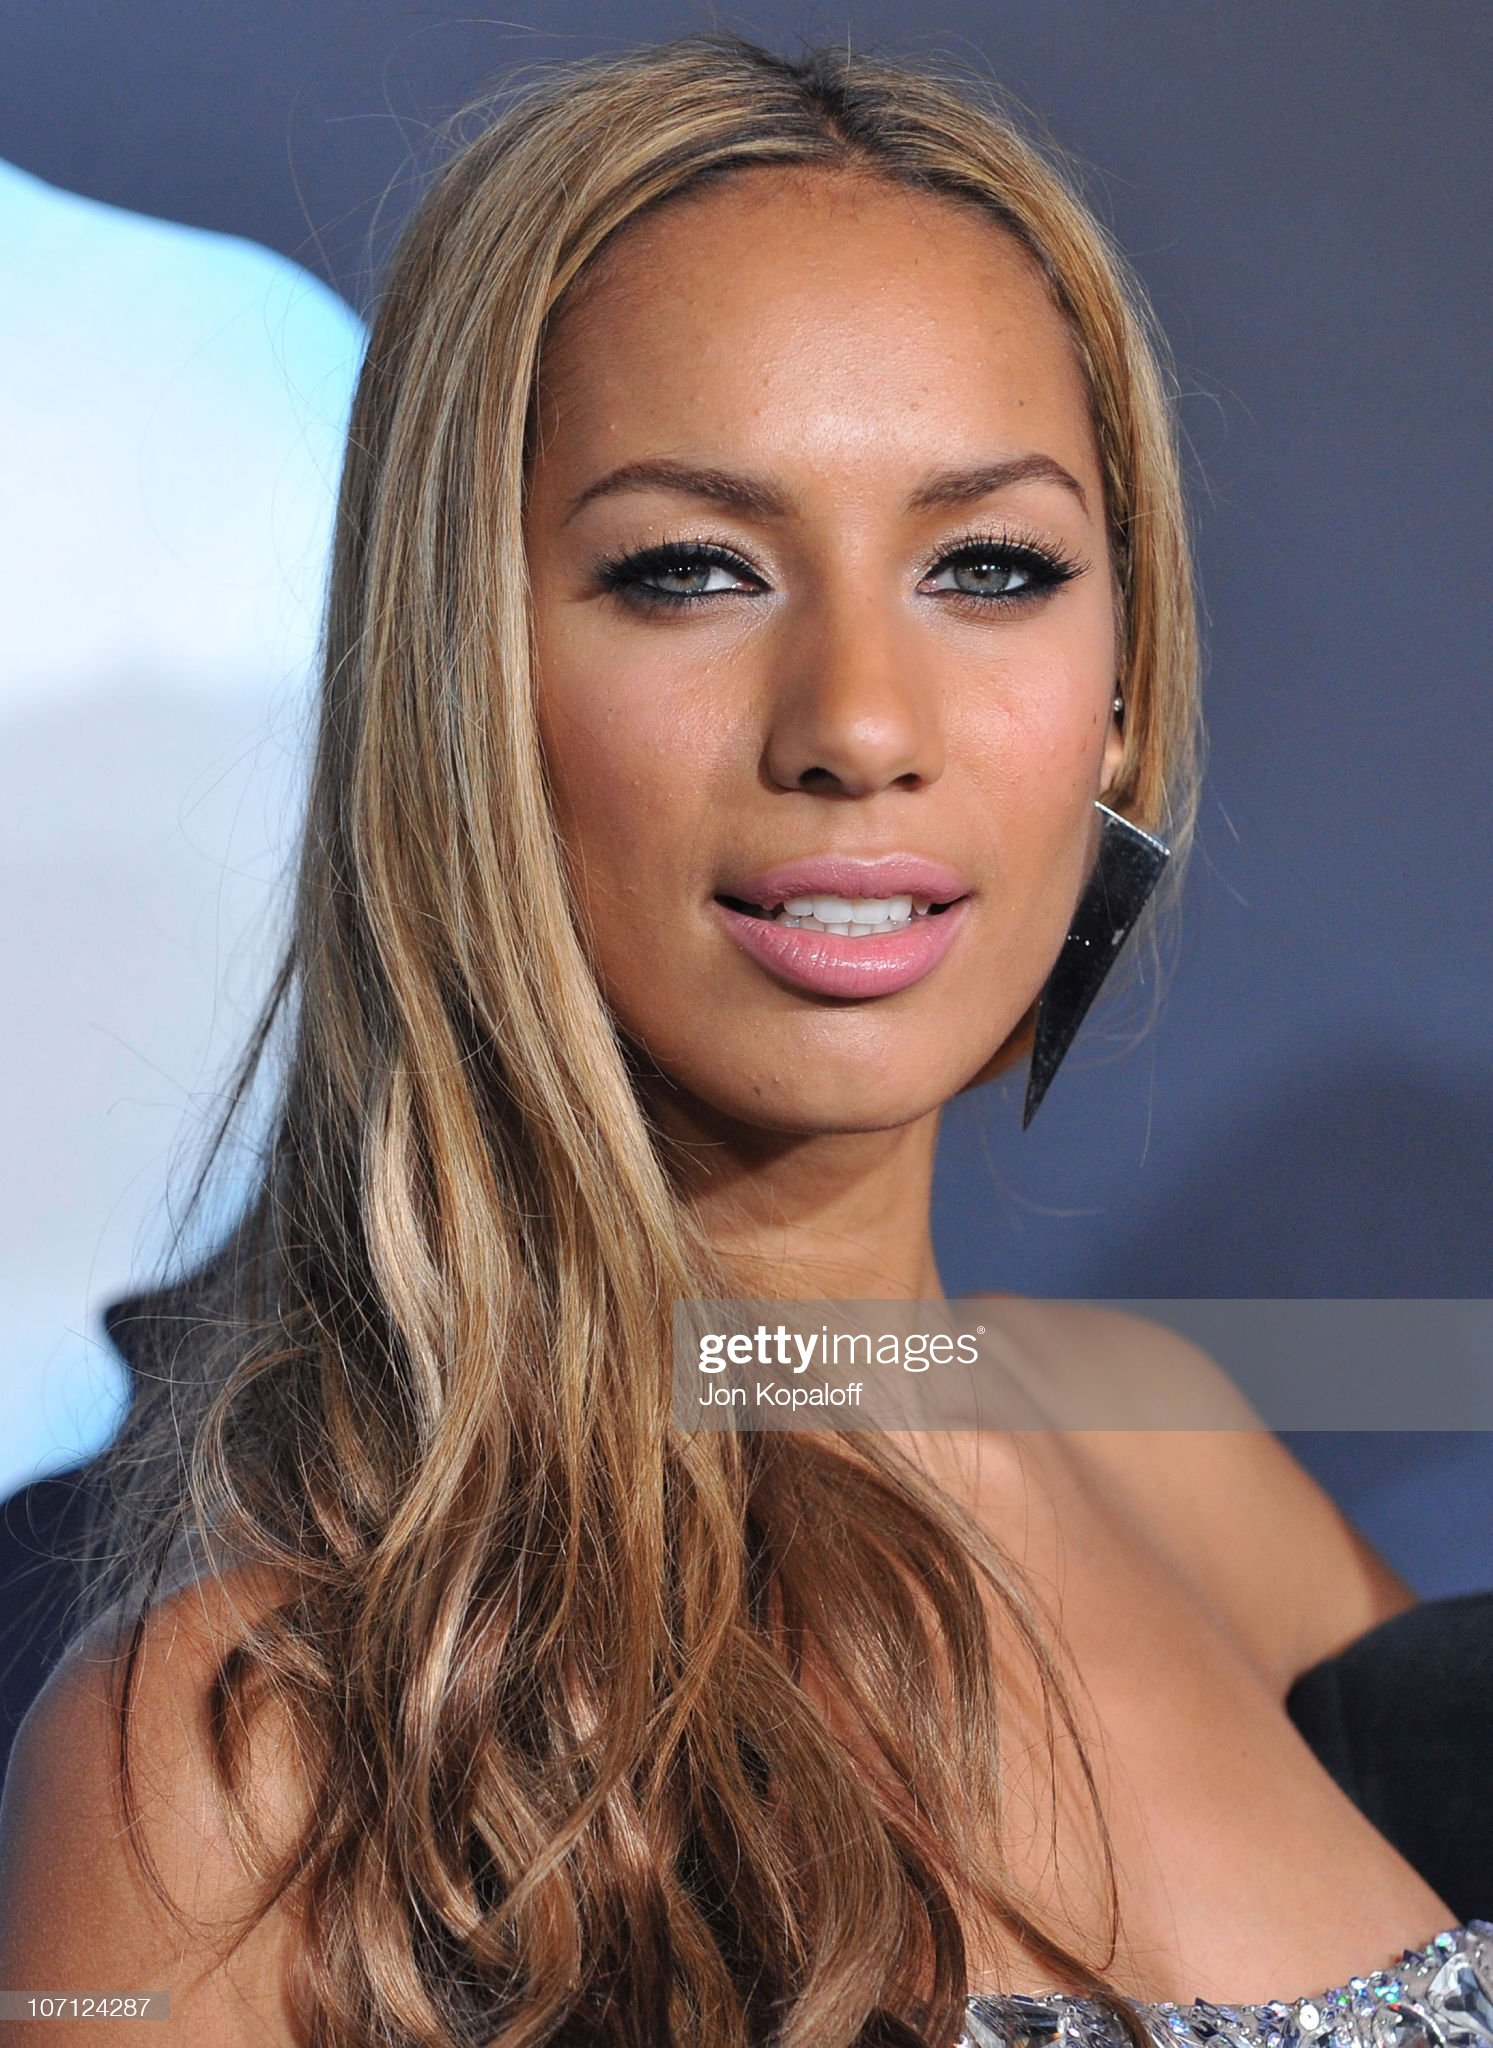 Ojos azules - personas famosas con los ojos de color AZUL Singer-leona-lewis-arrives-to-the-los-angeles-premiere-avatar-at-picture-id107124287?s=2048x2048